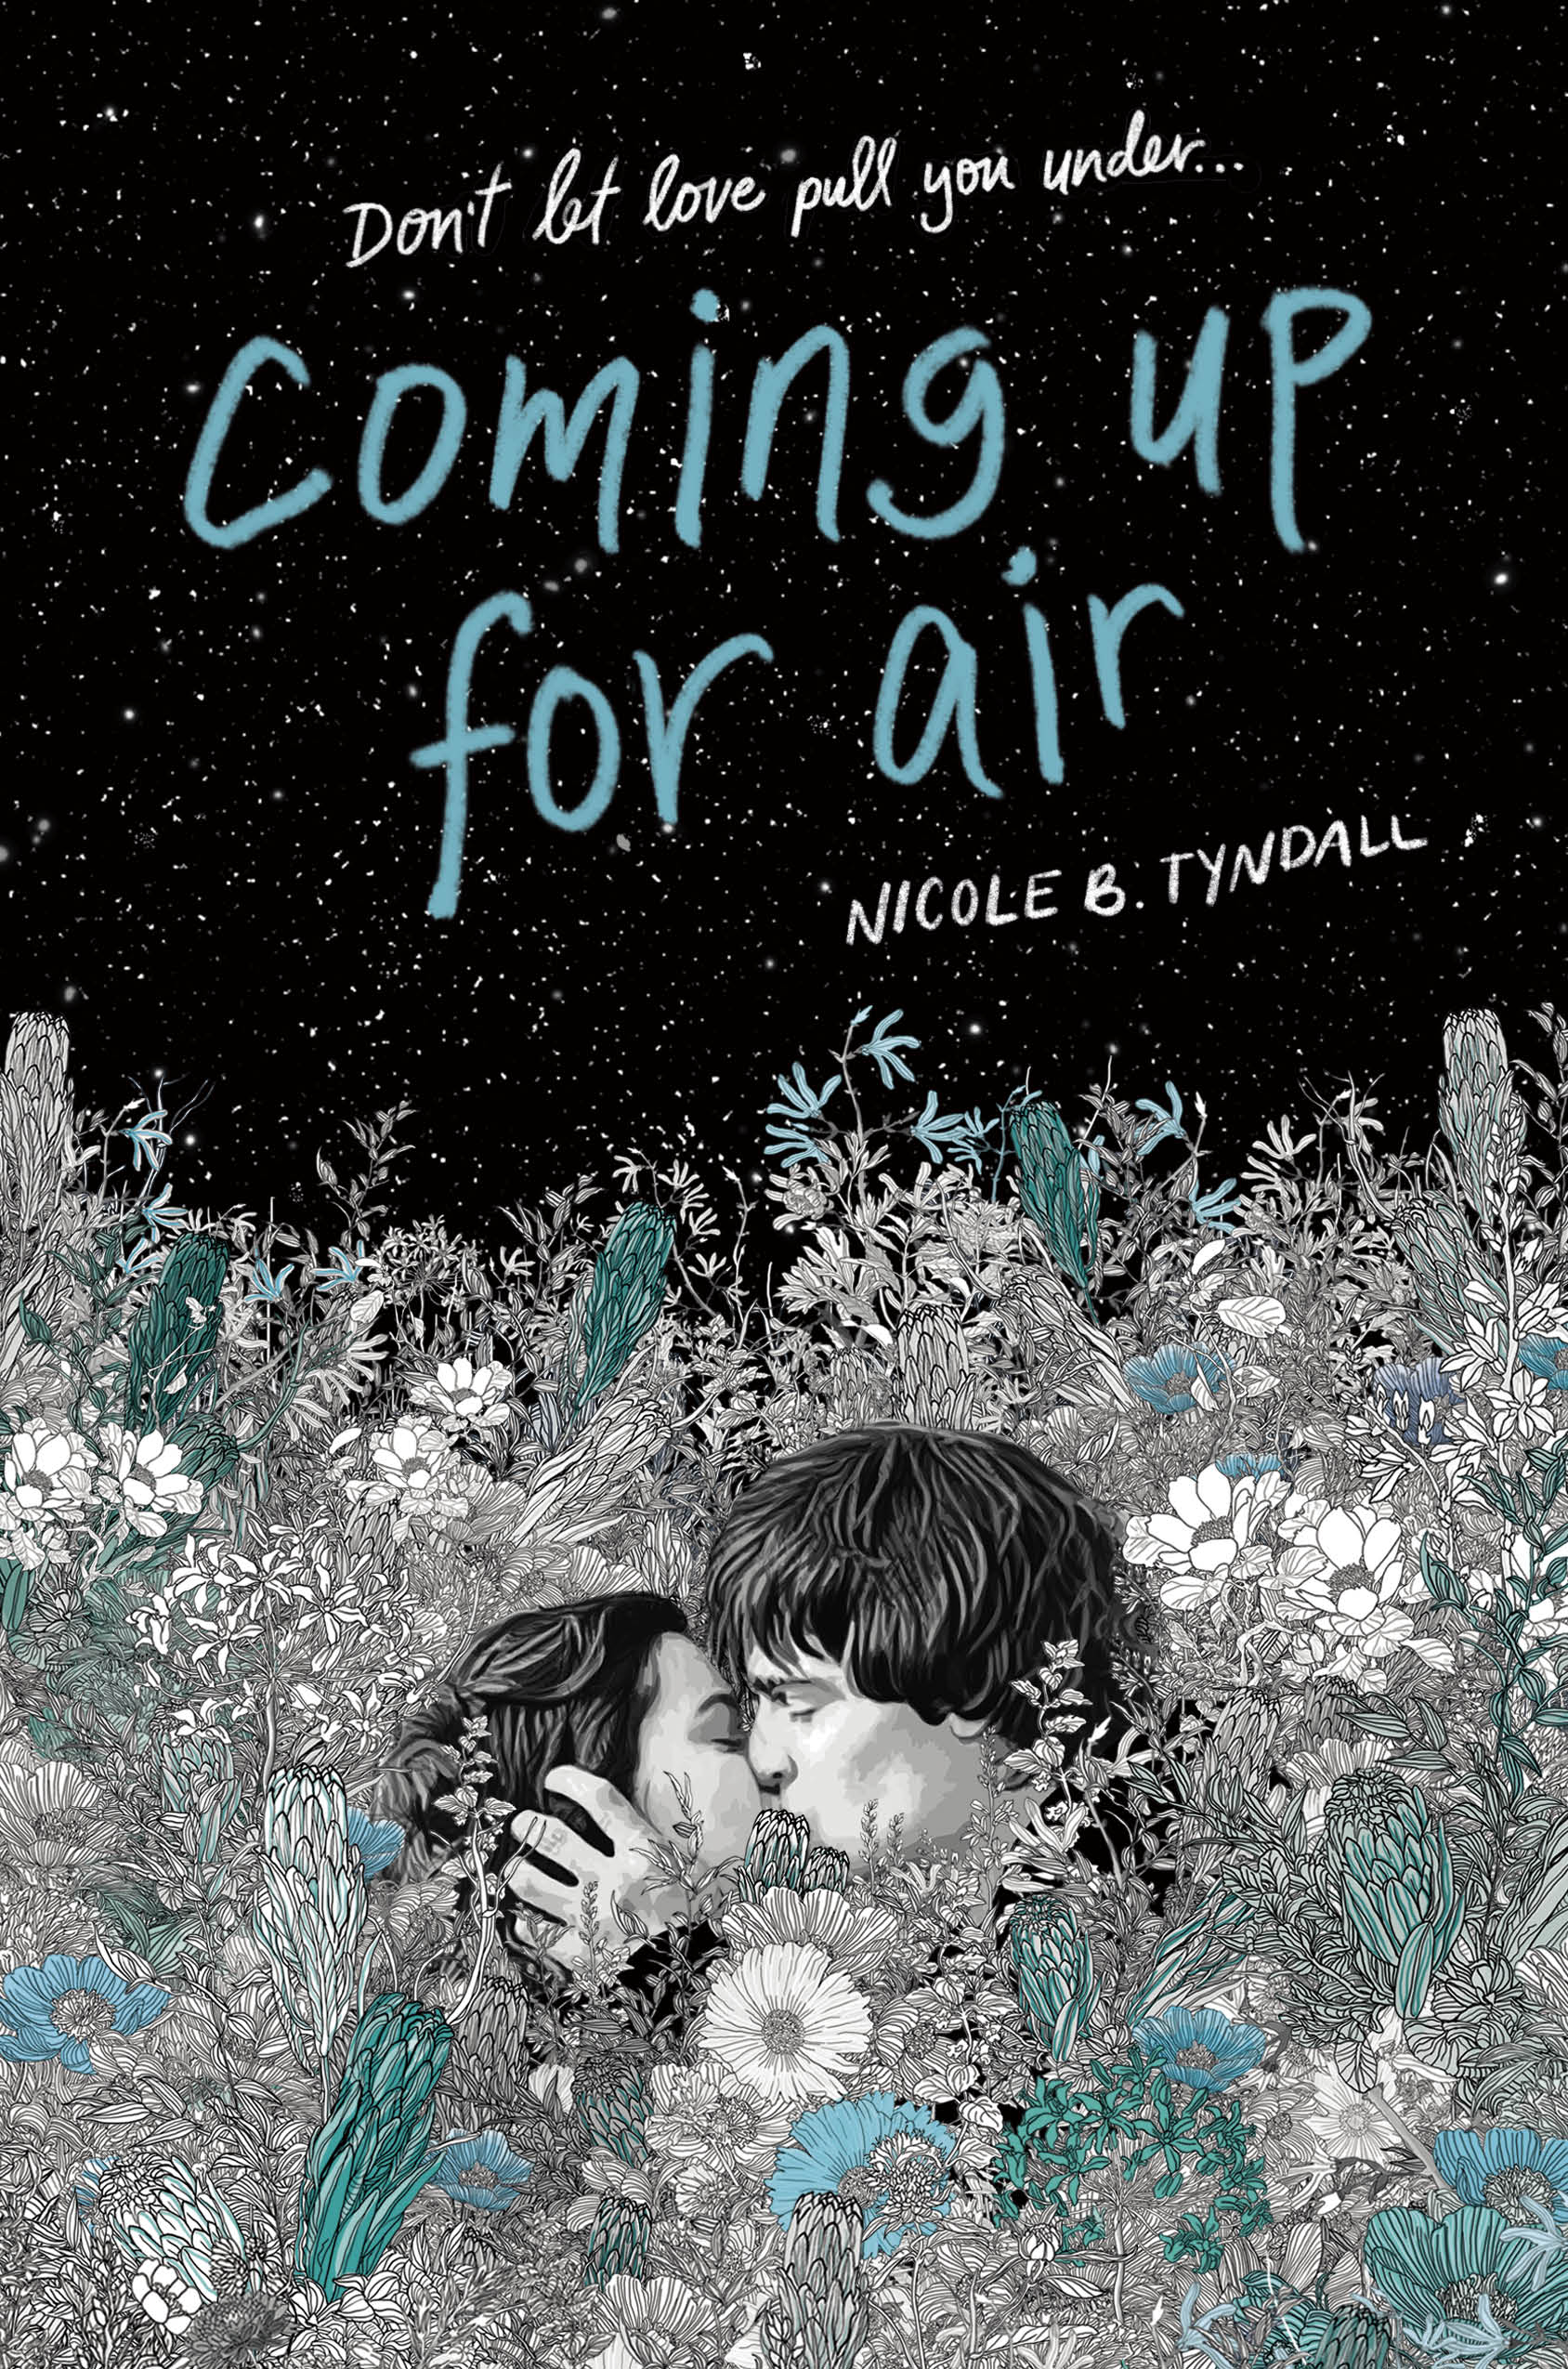 When Will Coming Up For Air By Nicole Tyndall Release? 2020 YA Contemporary Releases